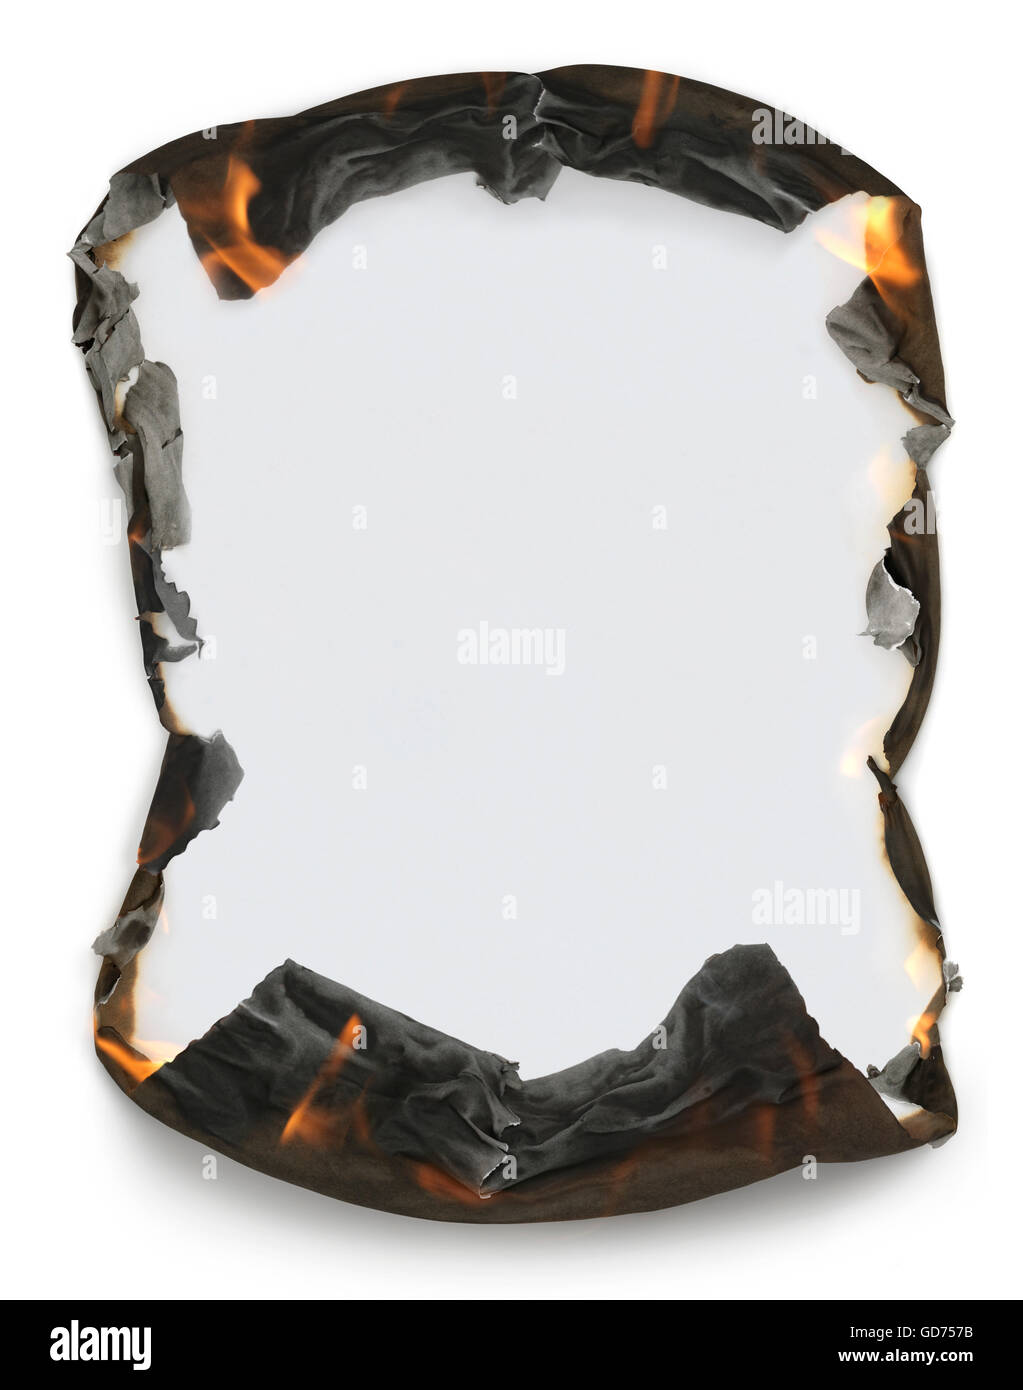 Sheet of blank paper with burning edges making a frame - Stock Image